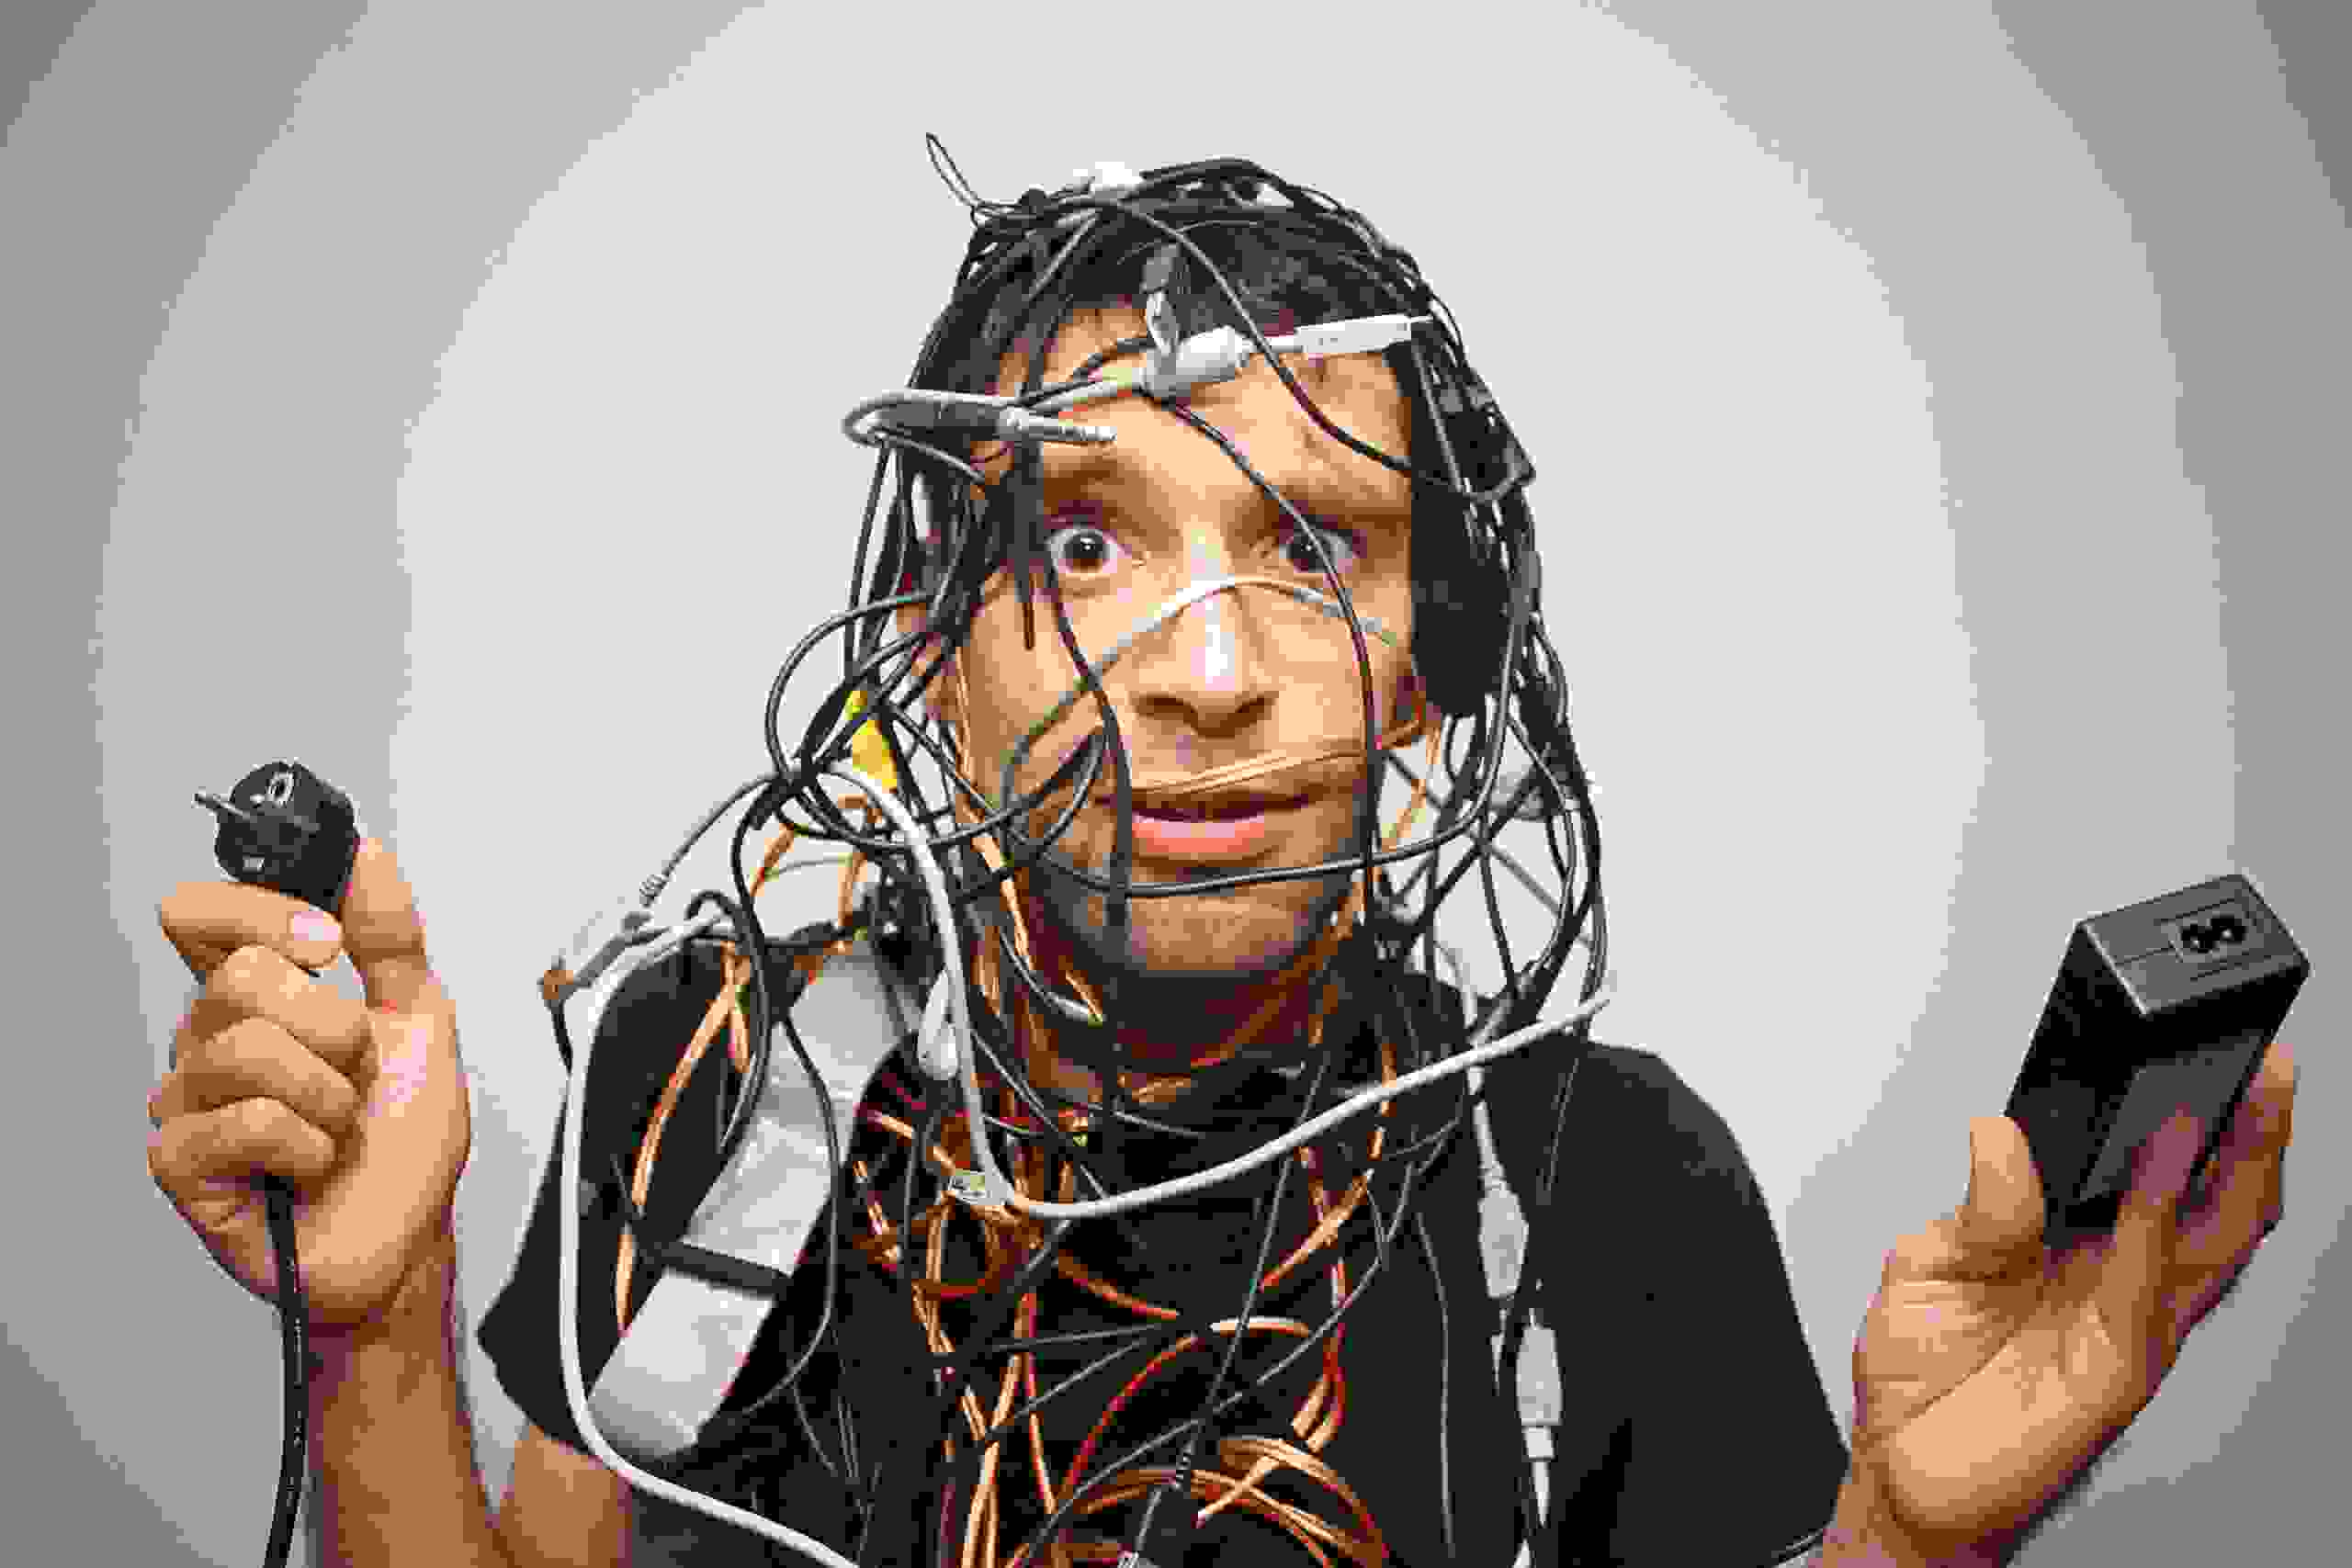 guy covered in wires